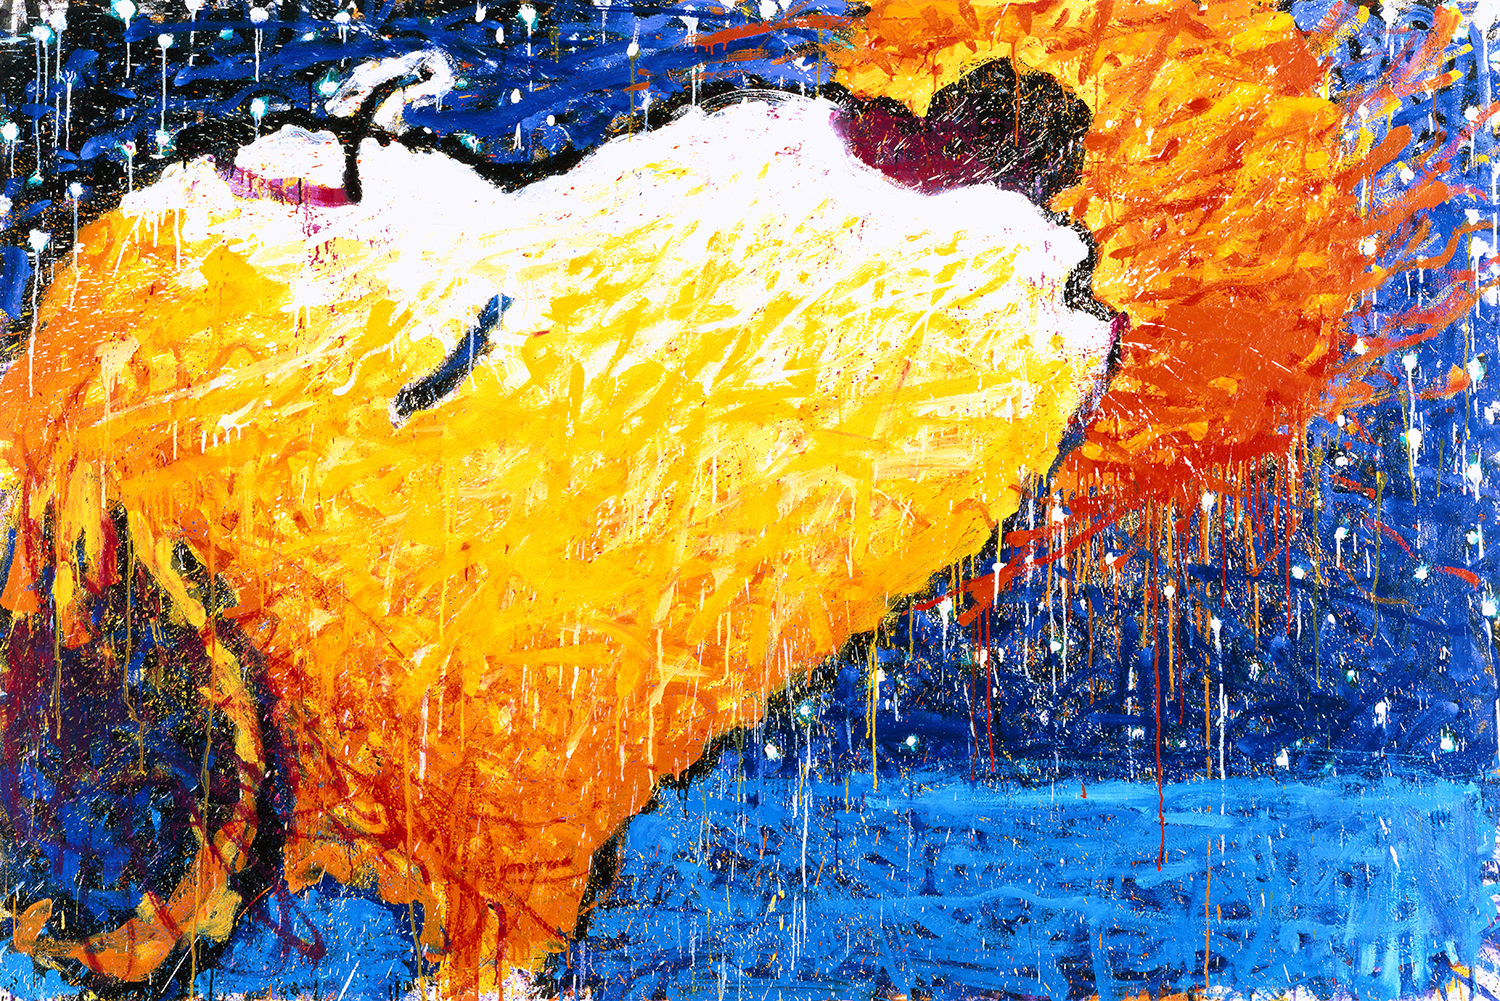 Sticky Wet Romantic Kiss On The Love Boat   oil enamel acrylic and varnish on canvas   64″ x 102″   1997